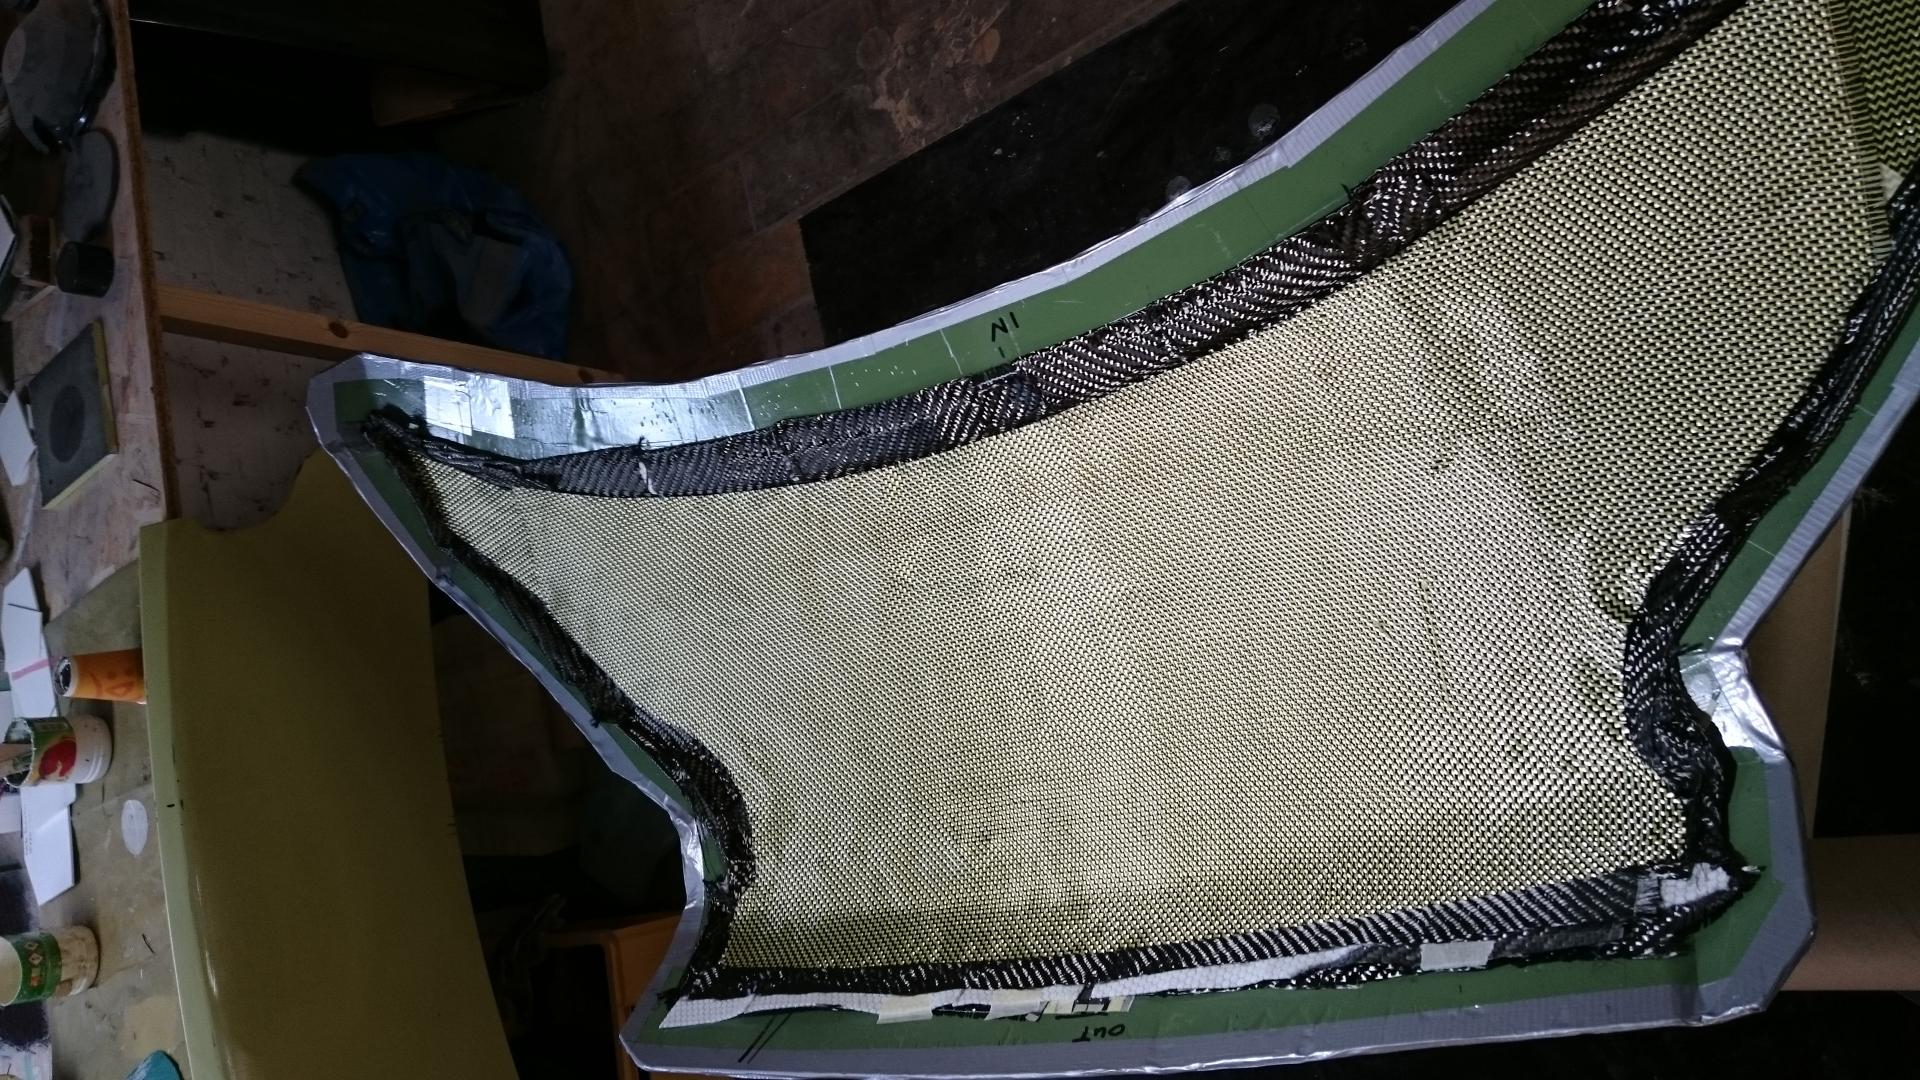 Cover internal view reinforcing aramid (kevlar)